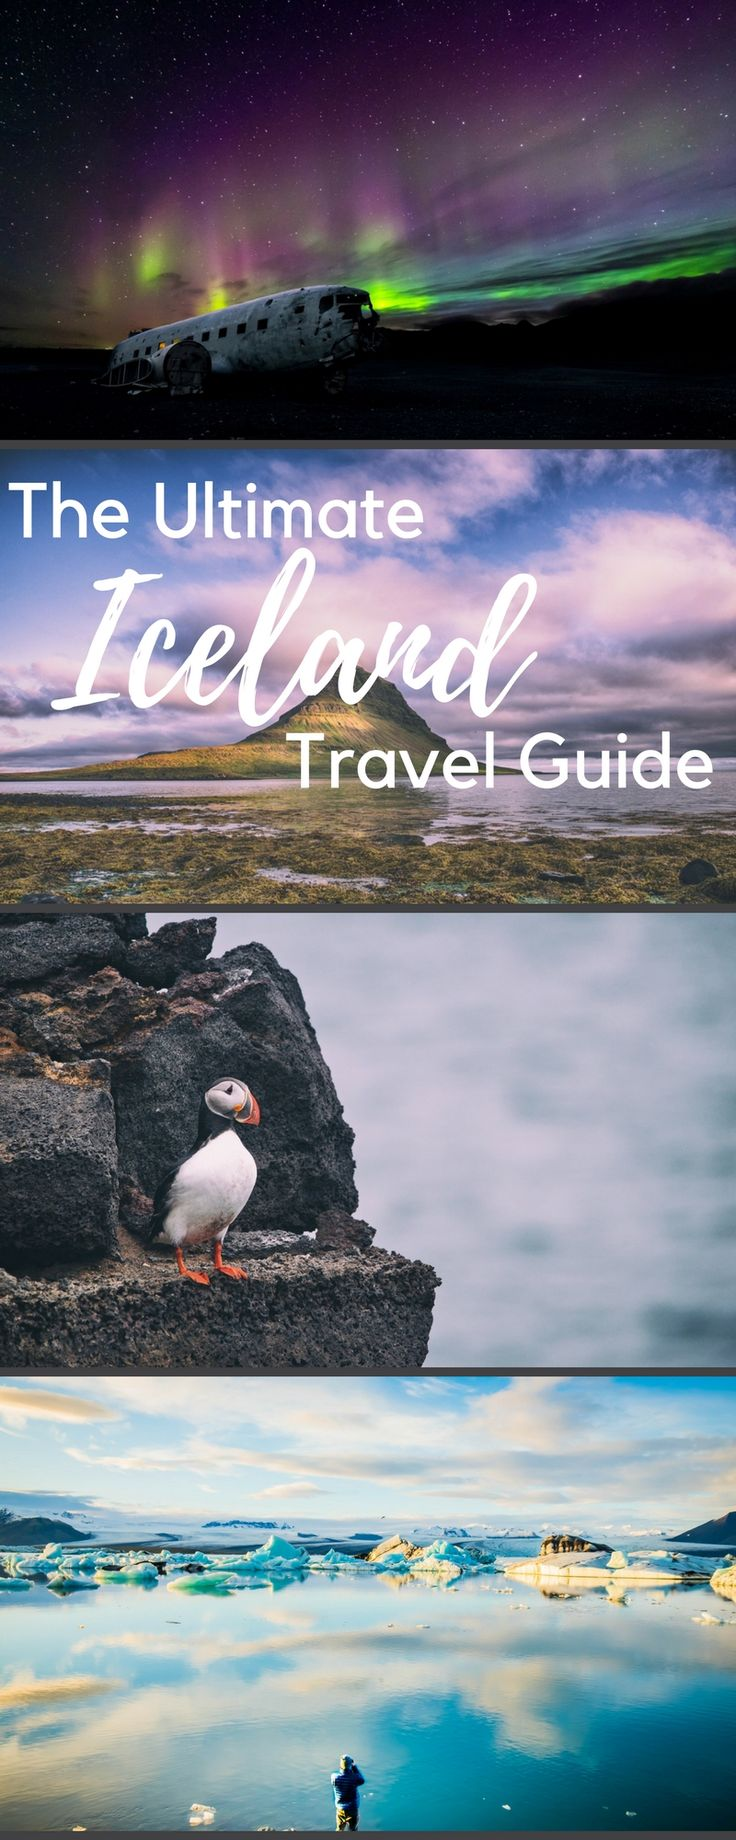 The ultimate Iceland travel guide is here. Average costs of traveling in Iceland, including what to see, and things to do.  Travel in Reykjavik, the Blue Lagoon, Nature Honeymoon, the perfect itinerary, good hiking, and all the gret road trips.